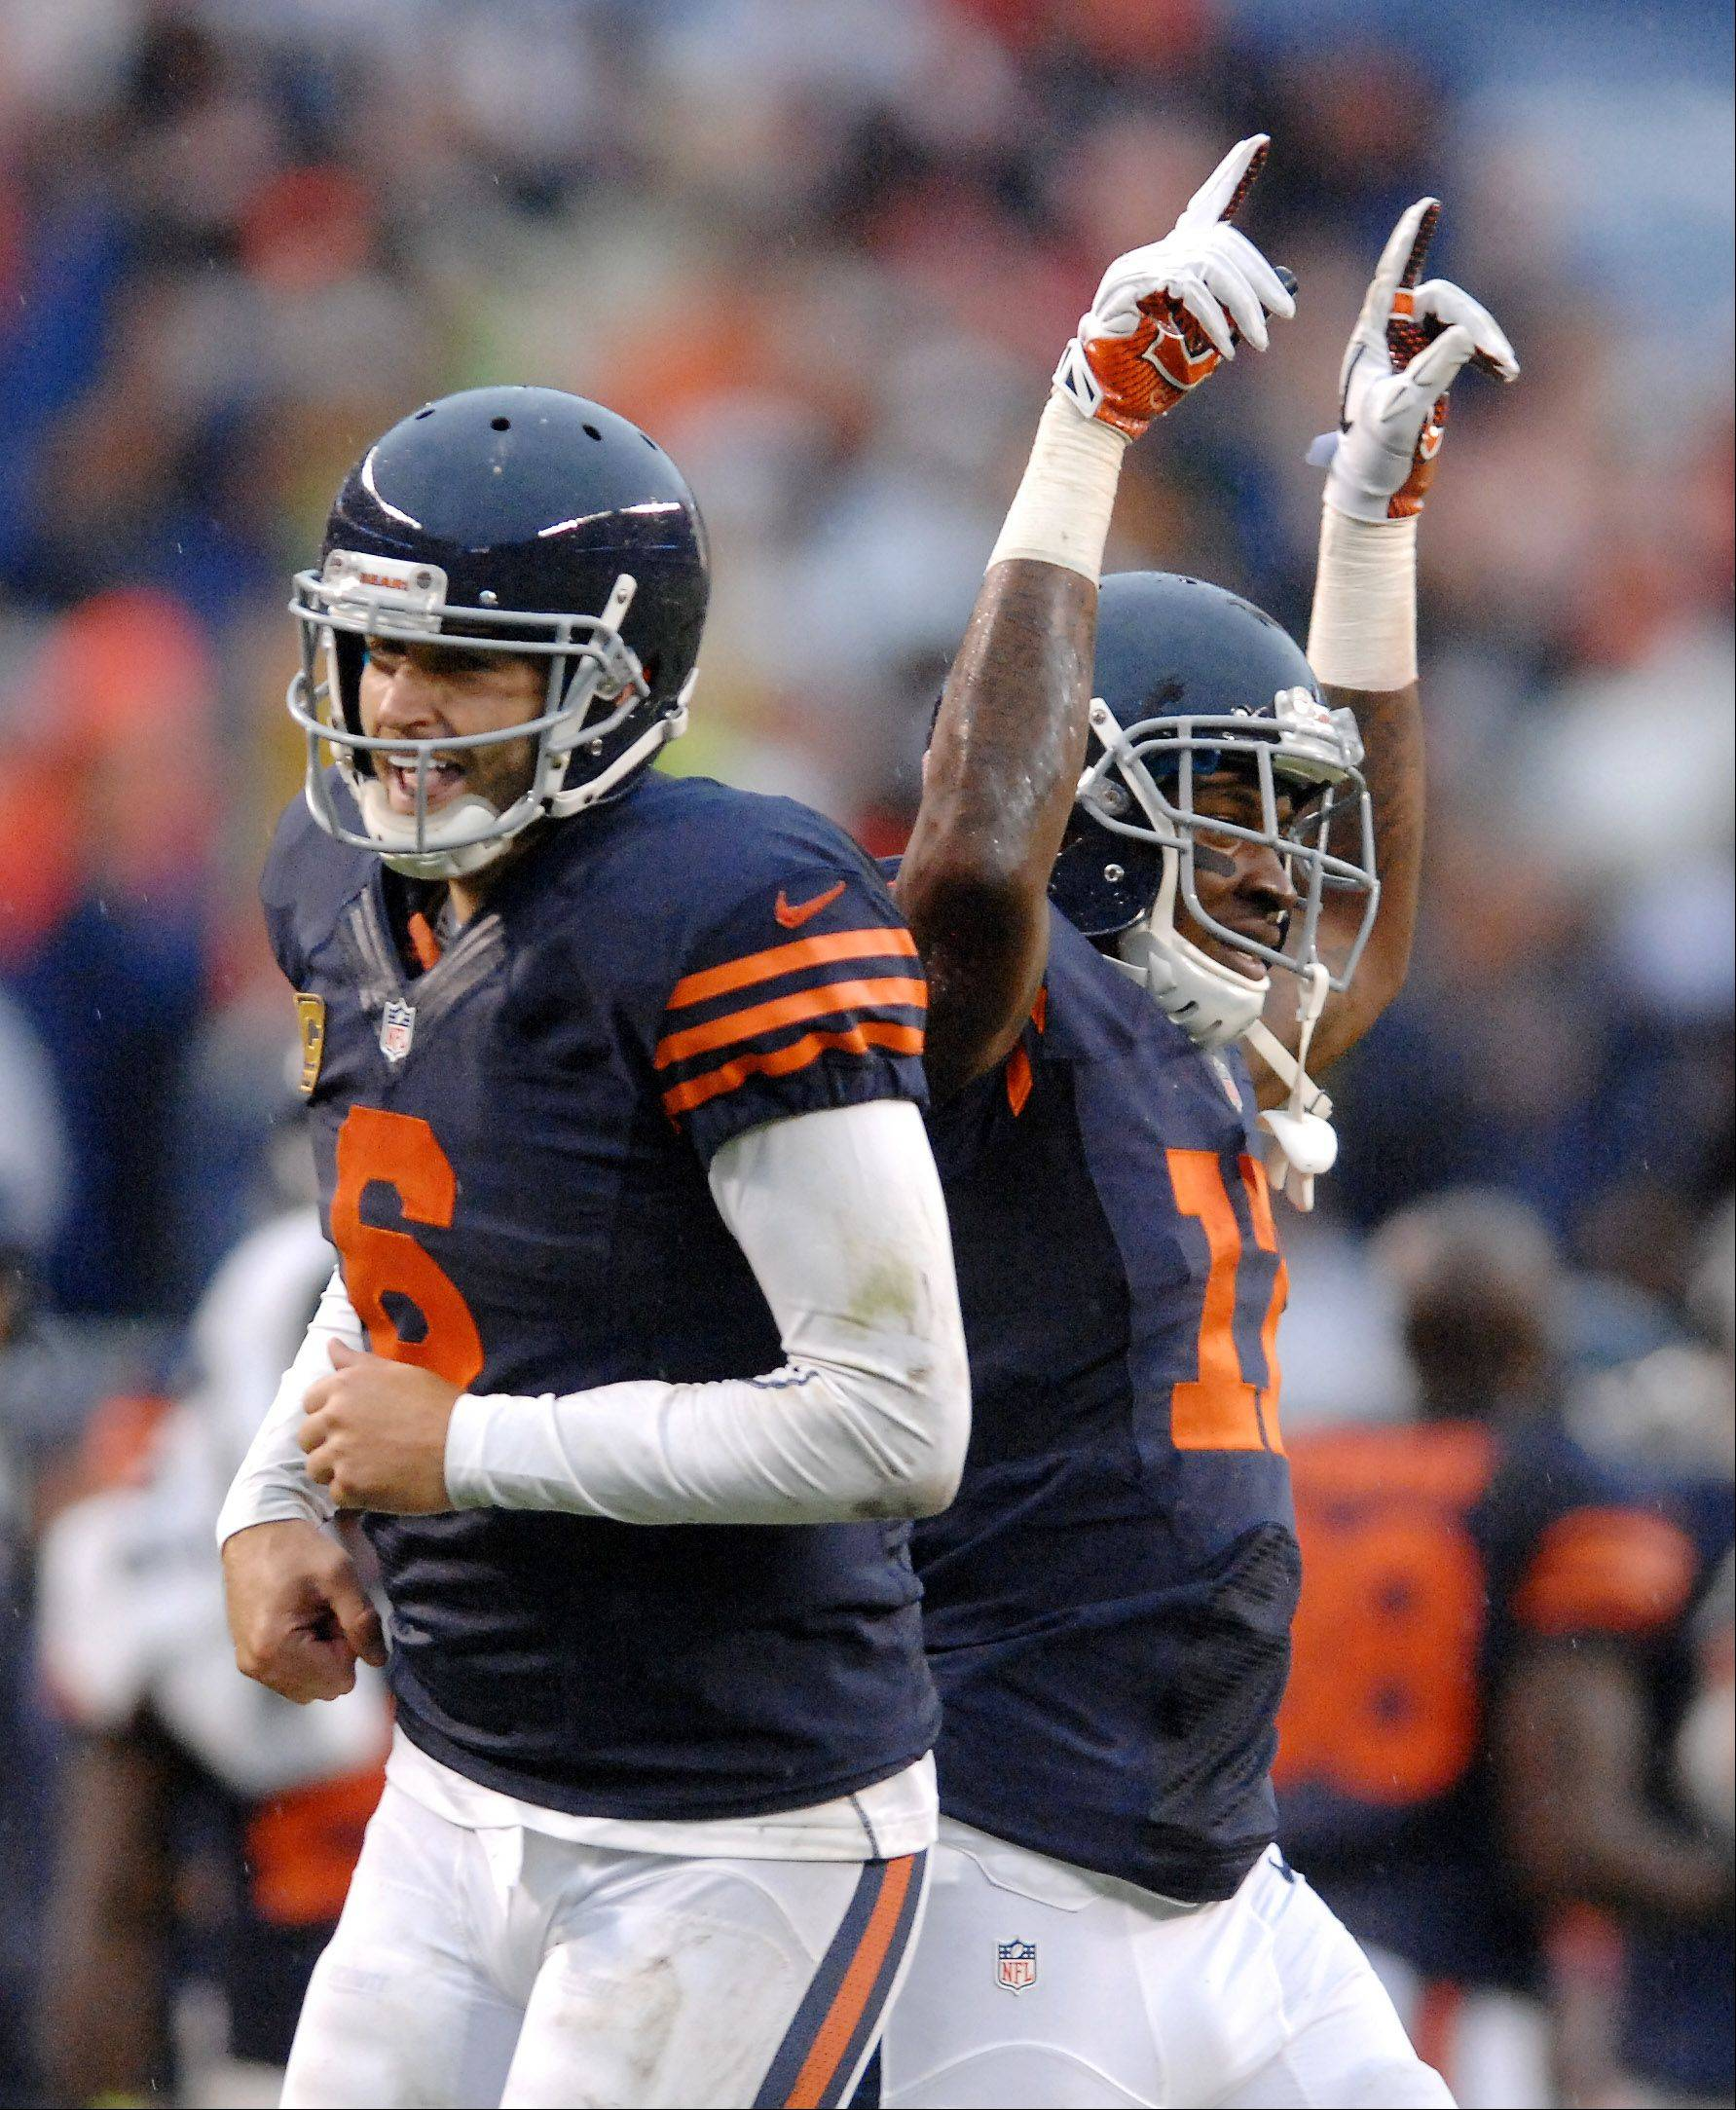 'Mr. Fourth Quarter' delivers again for Bears